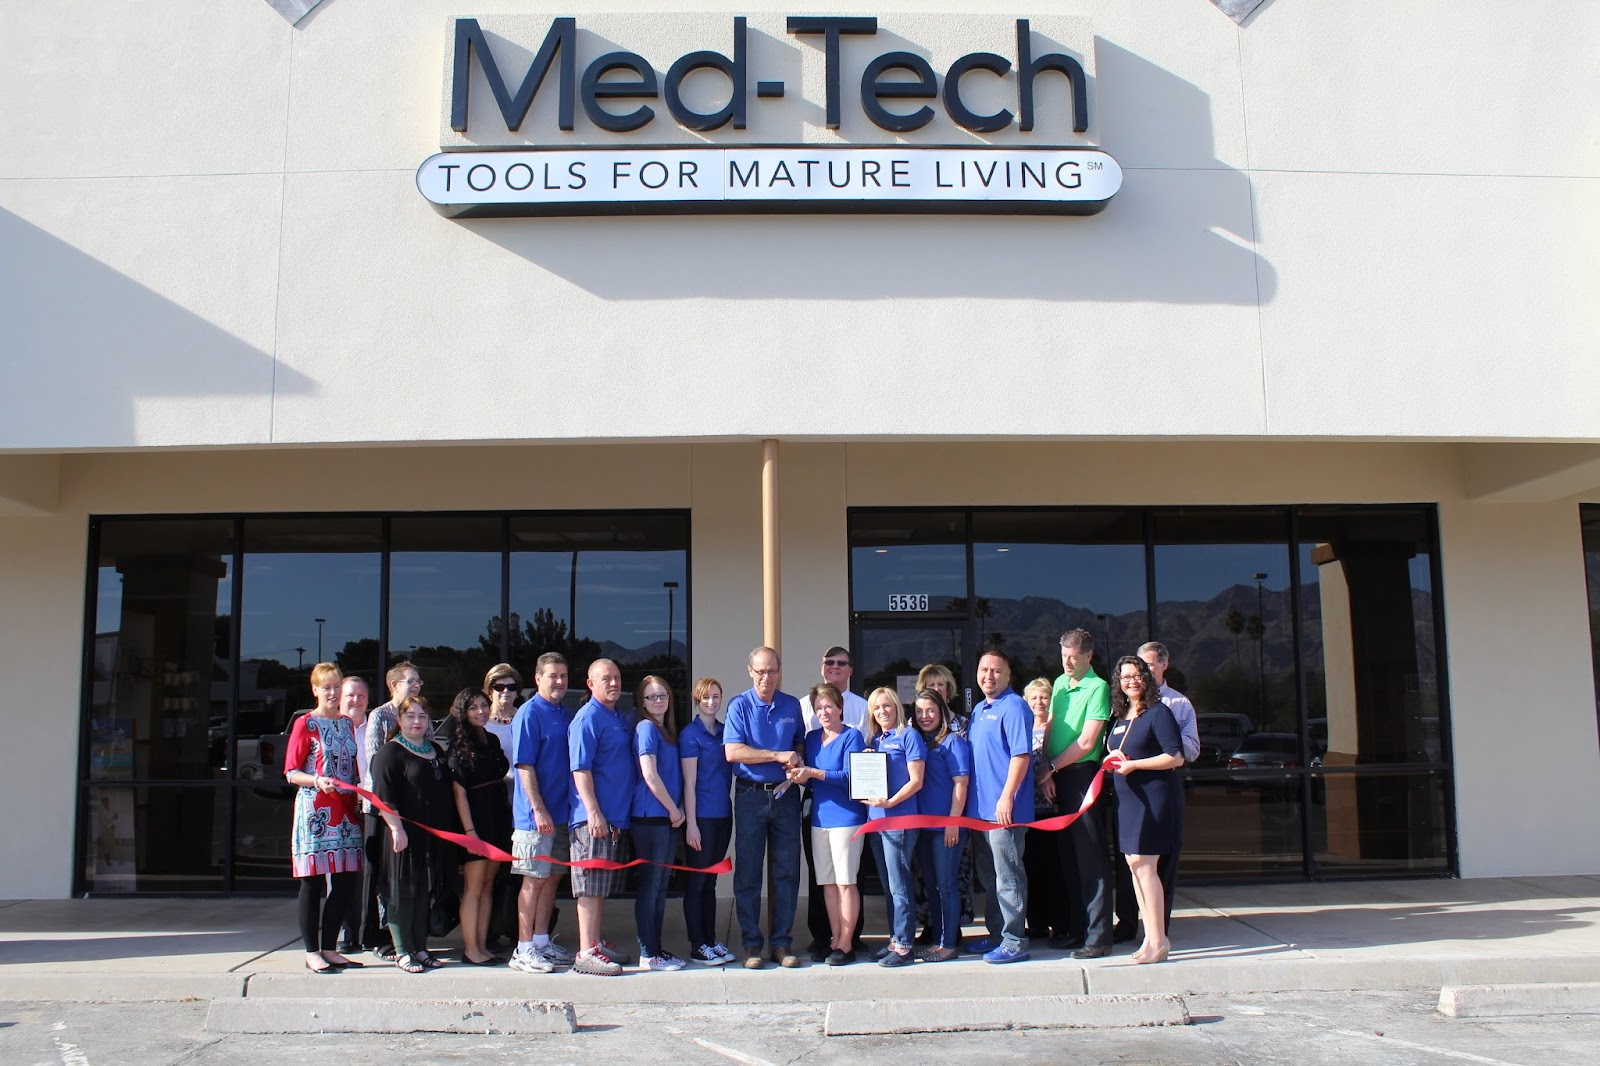 Congratulations to Med-Tech Tools for Mature Living, located at 5536 E. Grant Road, on the grand opening of their new location! Med-Tech has been serving Tucson's community for more than a decade. They carry the city's widest selection of home medical equipment and supplies, in a large showroom where you can browse to your heart's content. If you're in the neighborhood, please accept their invitation to come by and take a look for yourself. There's a very good chance you'll find a Tool for Mature Living that you can't live without. Local delivery and professional installation is free with any purchase over $50. Whatever it is, they'll set it up, show you how to use it, and haul away the packaging when their done.